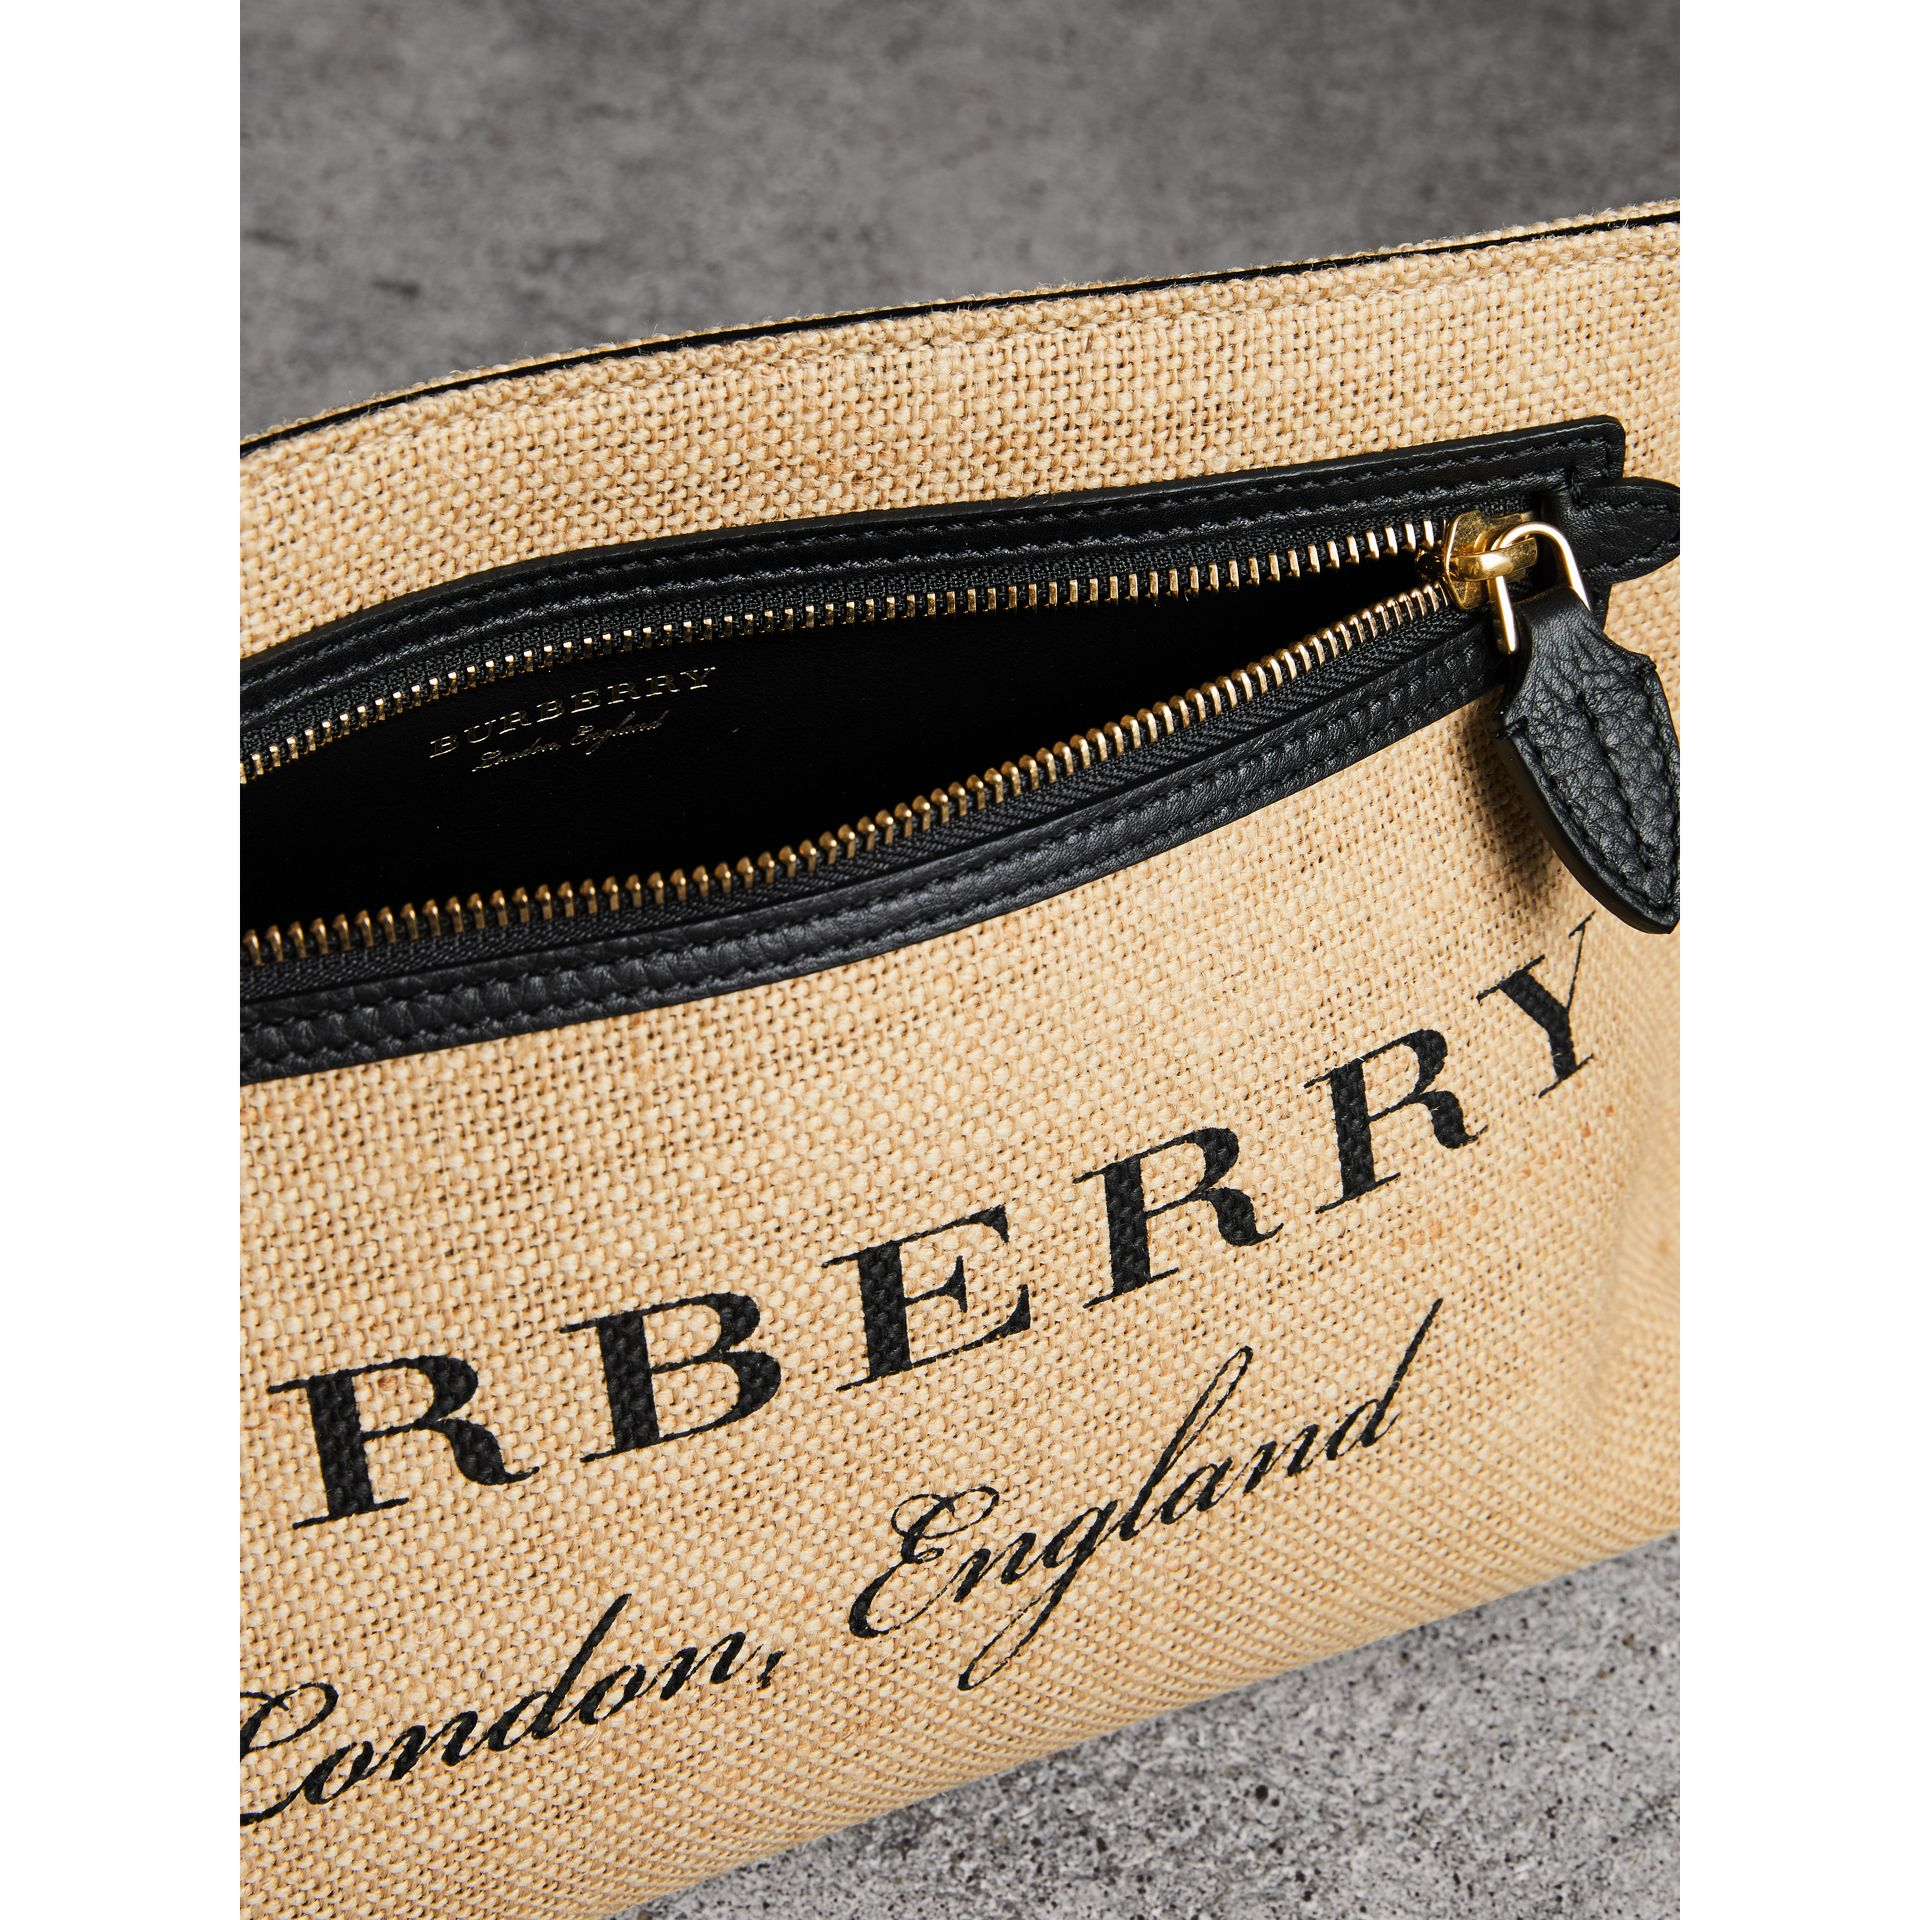 Logo Print Jute Wristlet Clutch in Black - Women | Burberry - gallery image 3